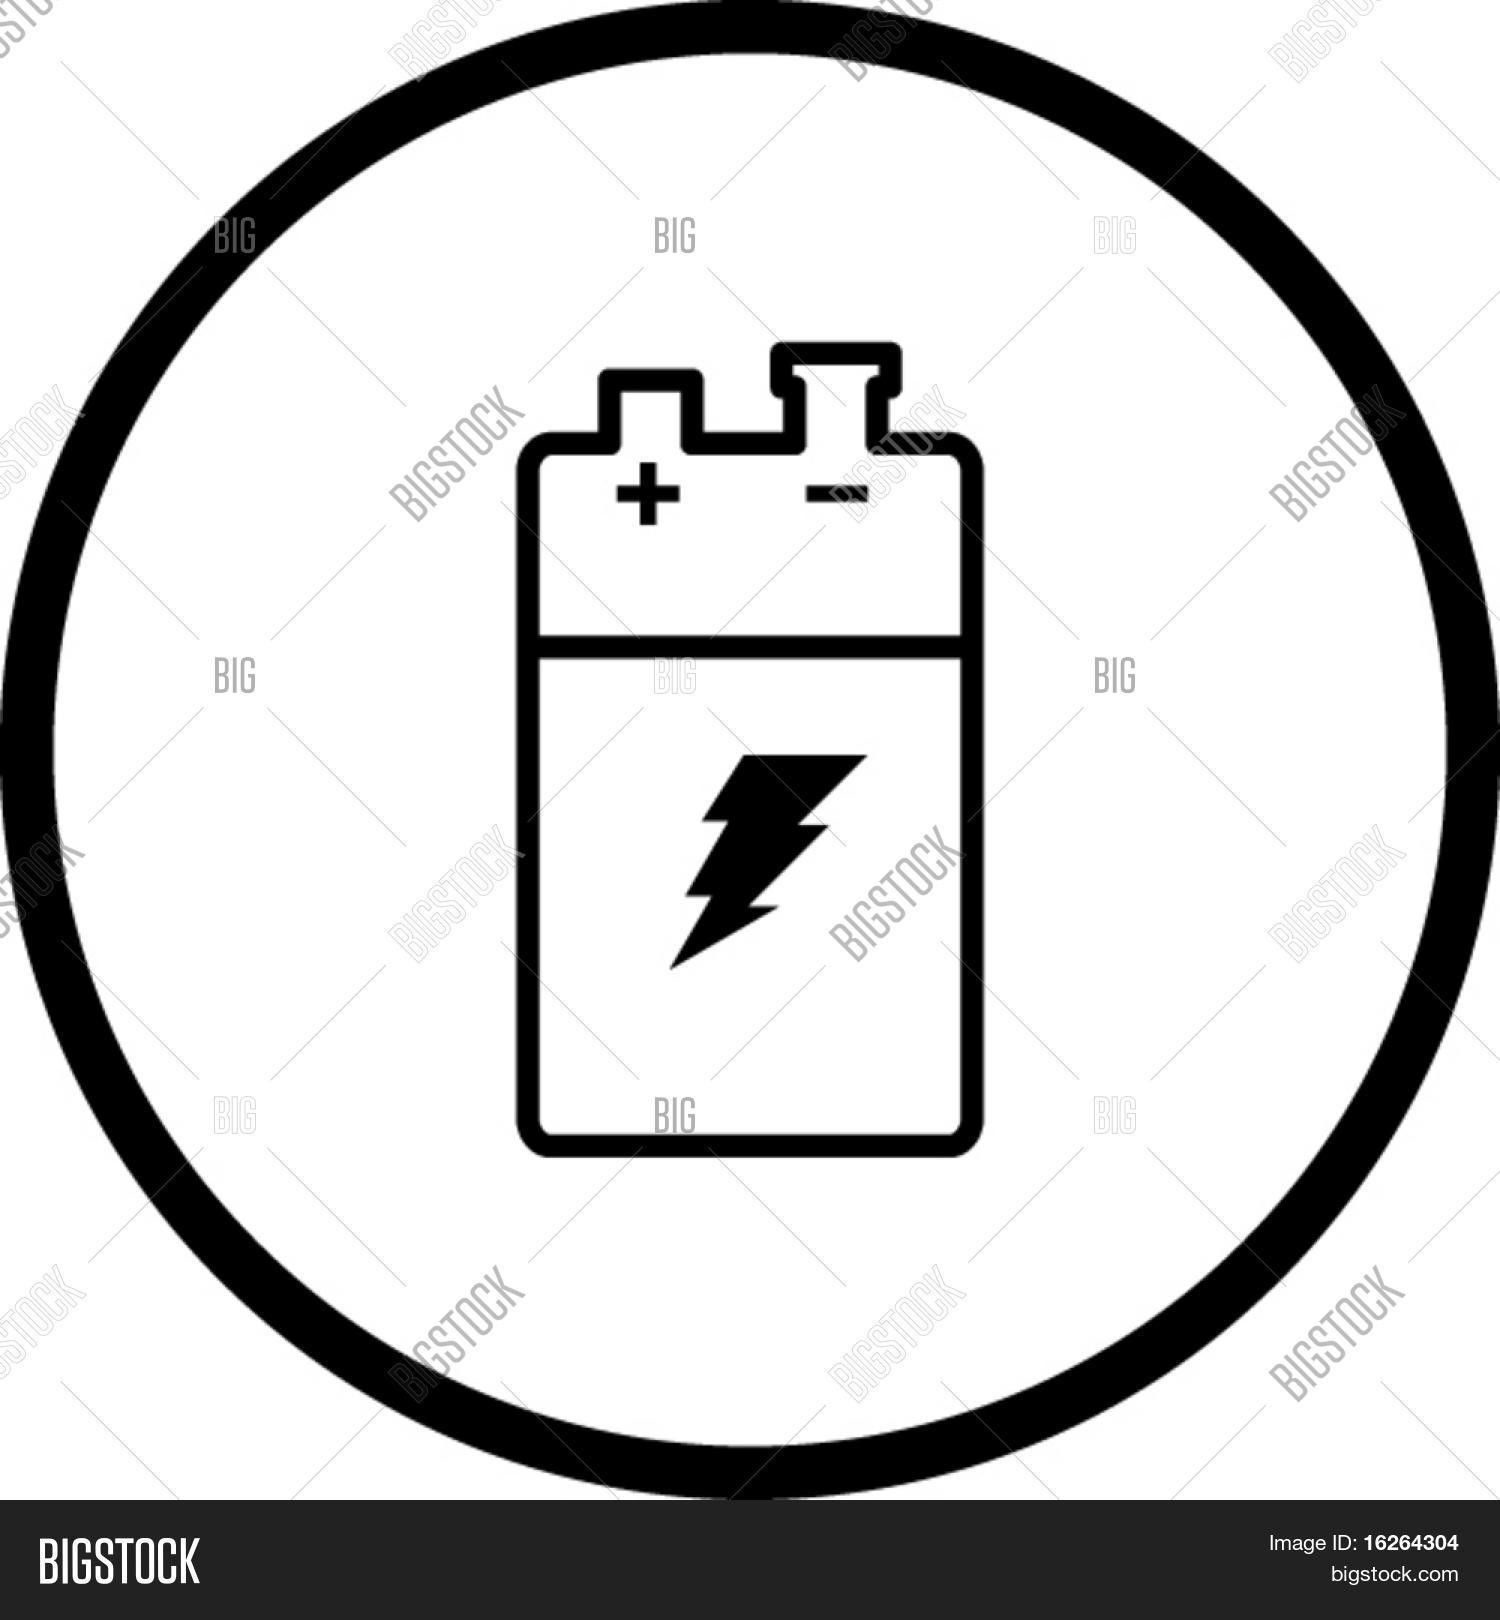 What is the symbol for battery dolgular component electrical symbol for a battery farah science may icon biocorpaavc